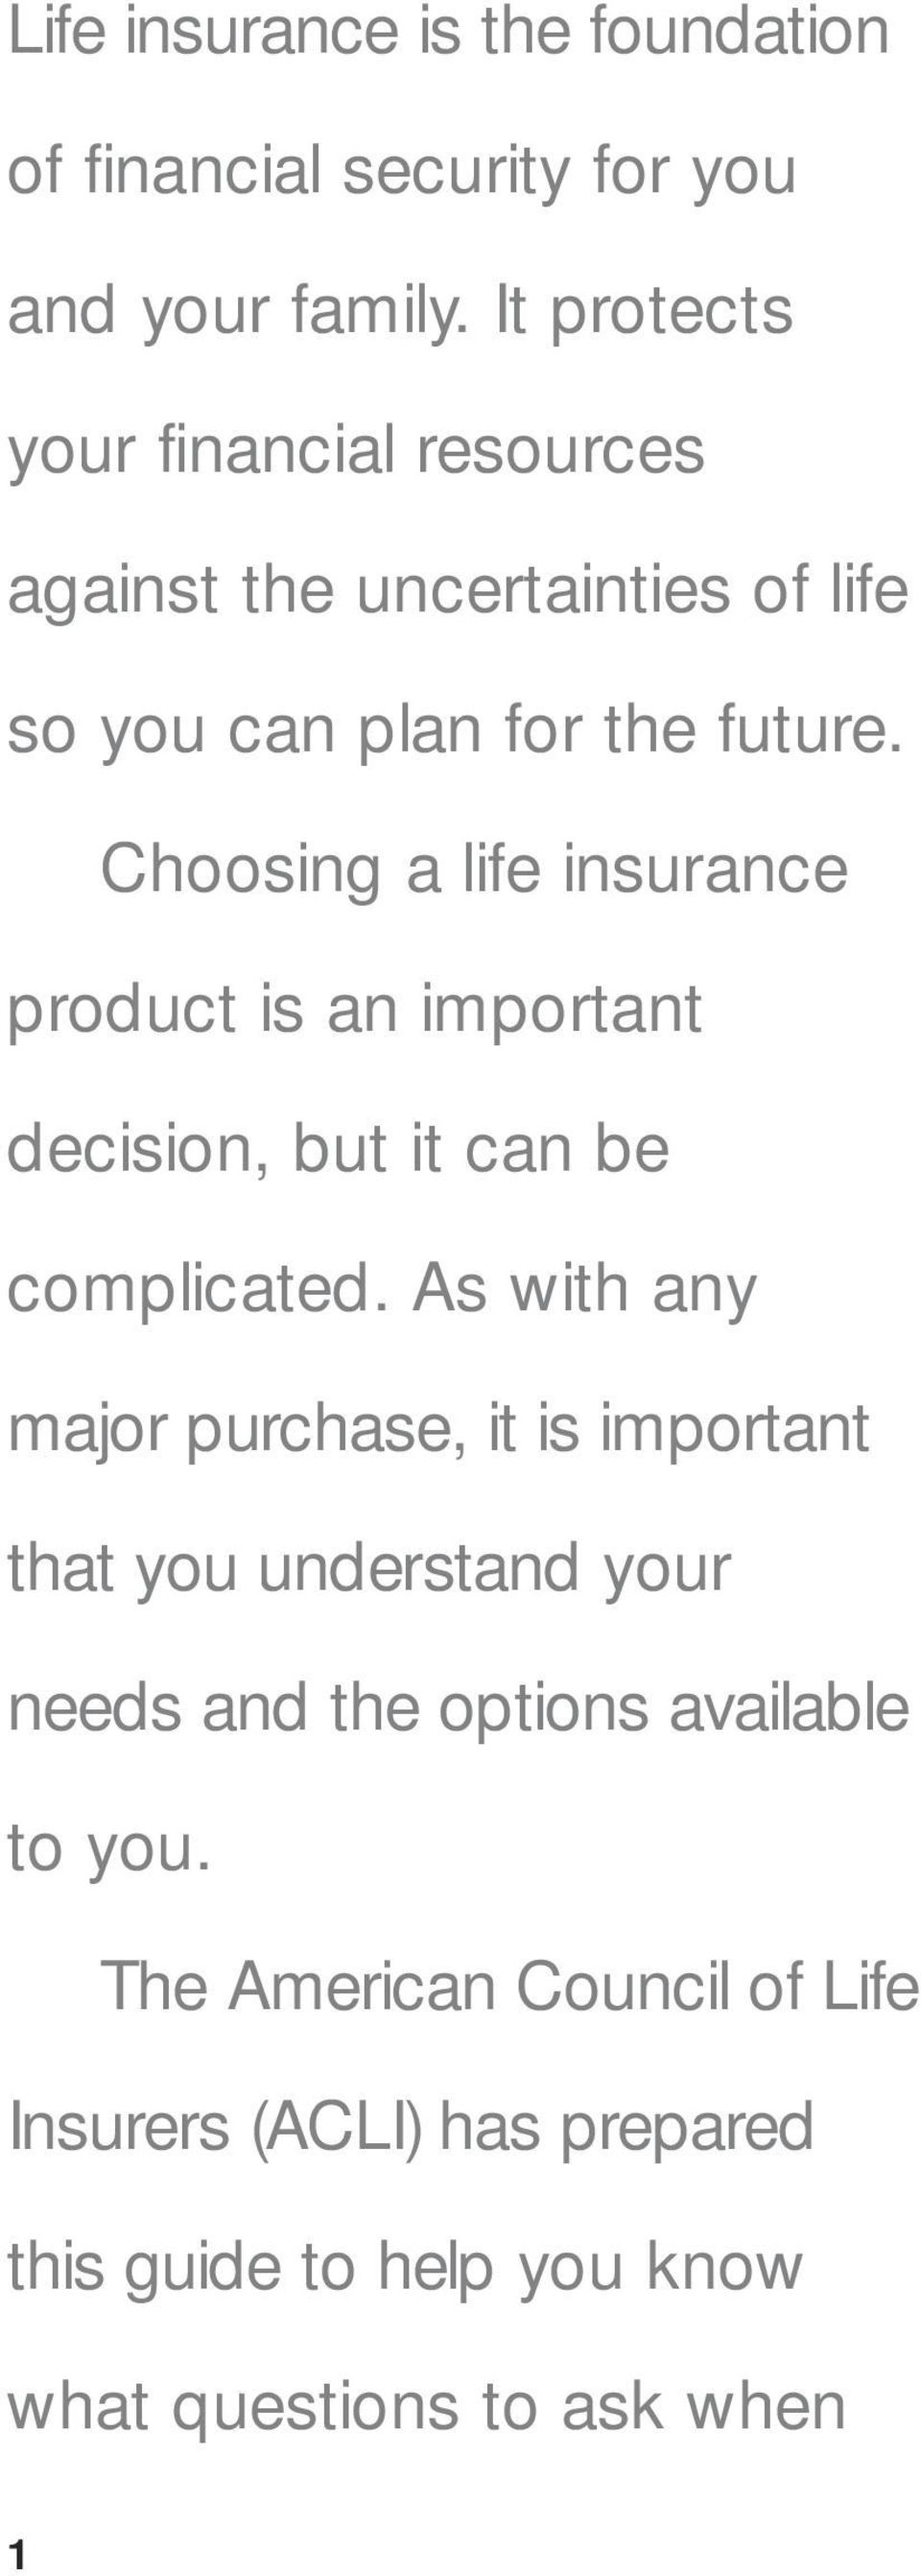 Choosing a life insurance product is an important decision, but it can be complicated.